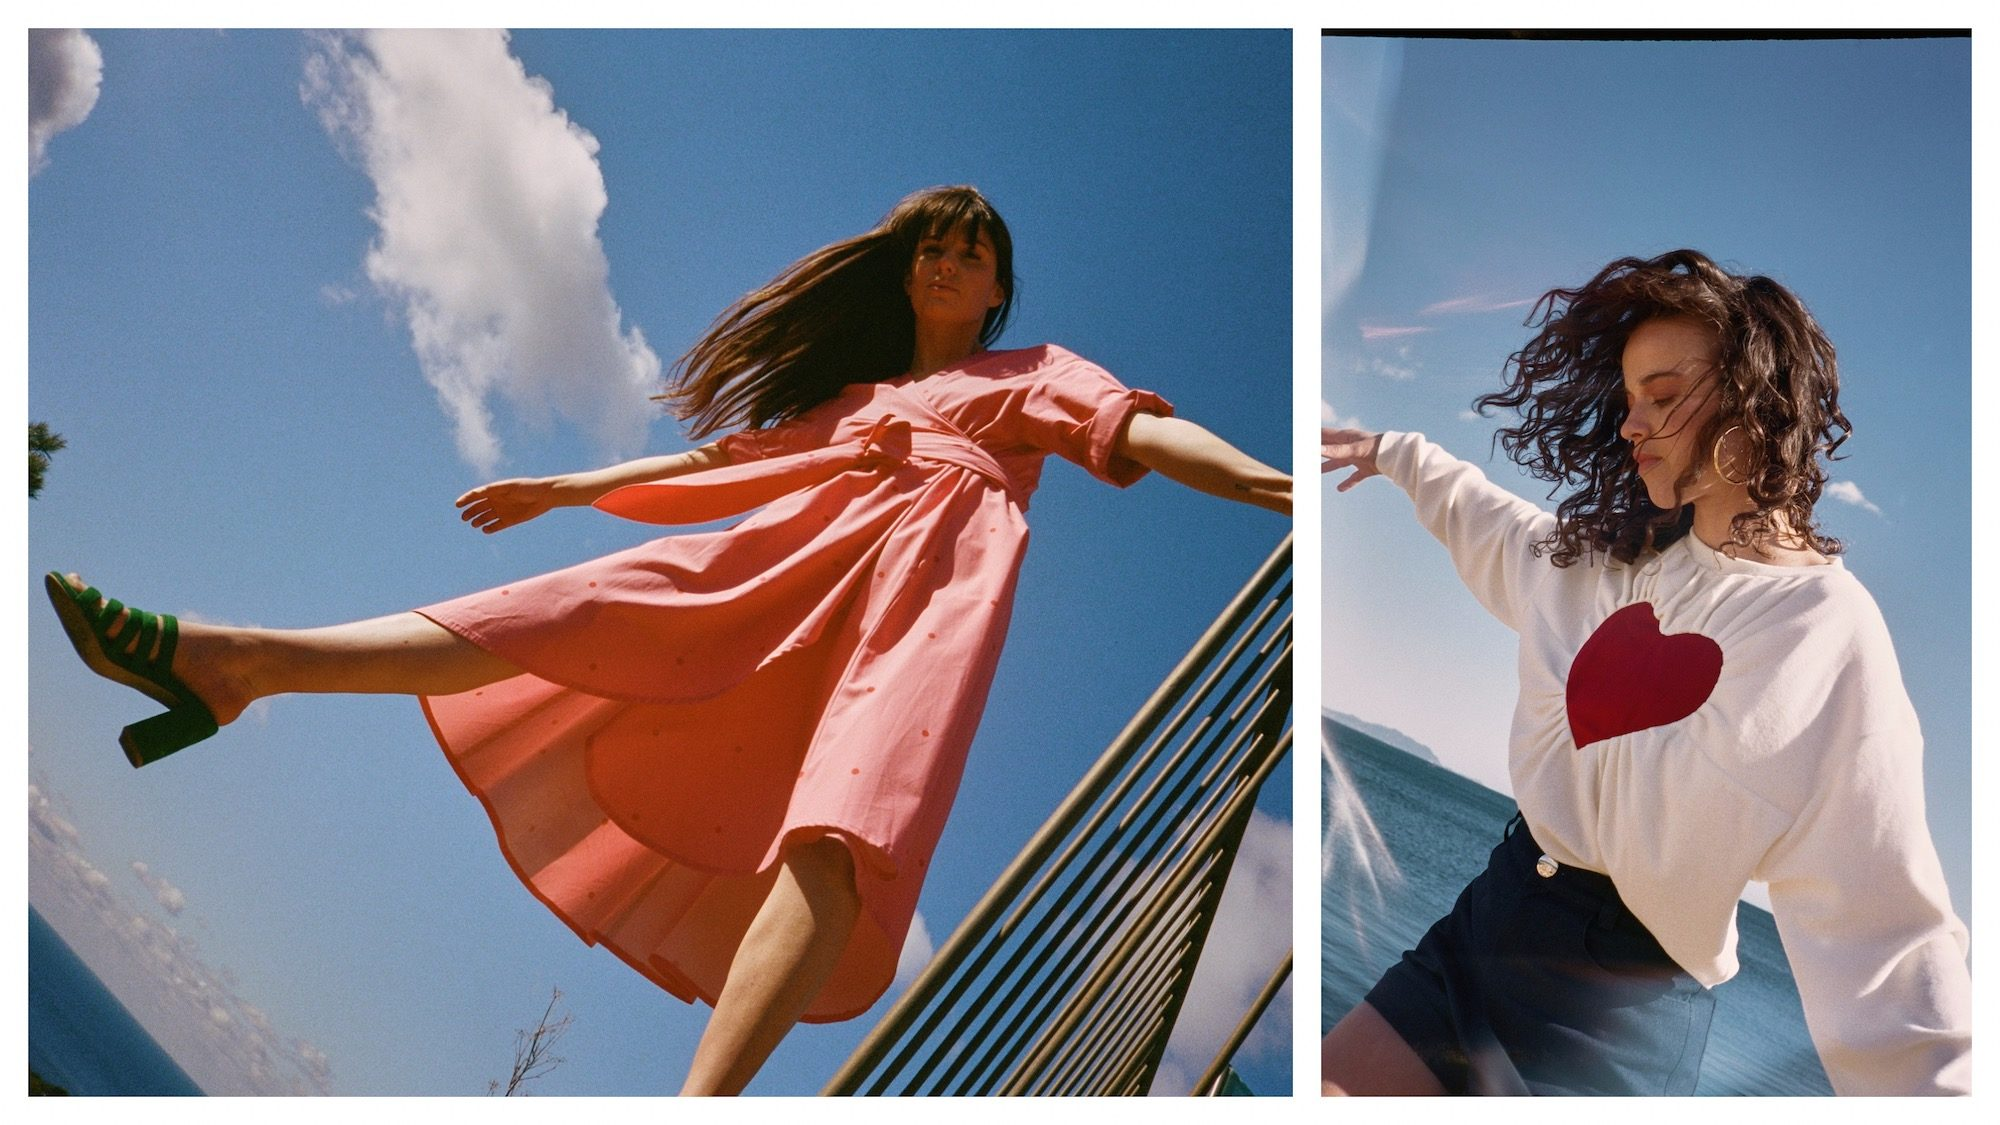 What to buy to look like a Parisian? Anything from Make My Lemonade, a fashion brand Parisians love for its retro cuts like this coral cotton dress (left) and heart-print white sweater (right).